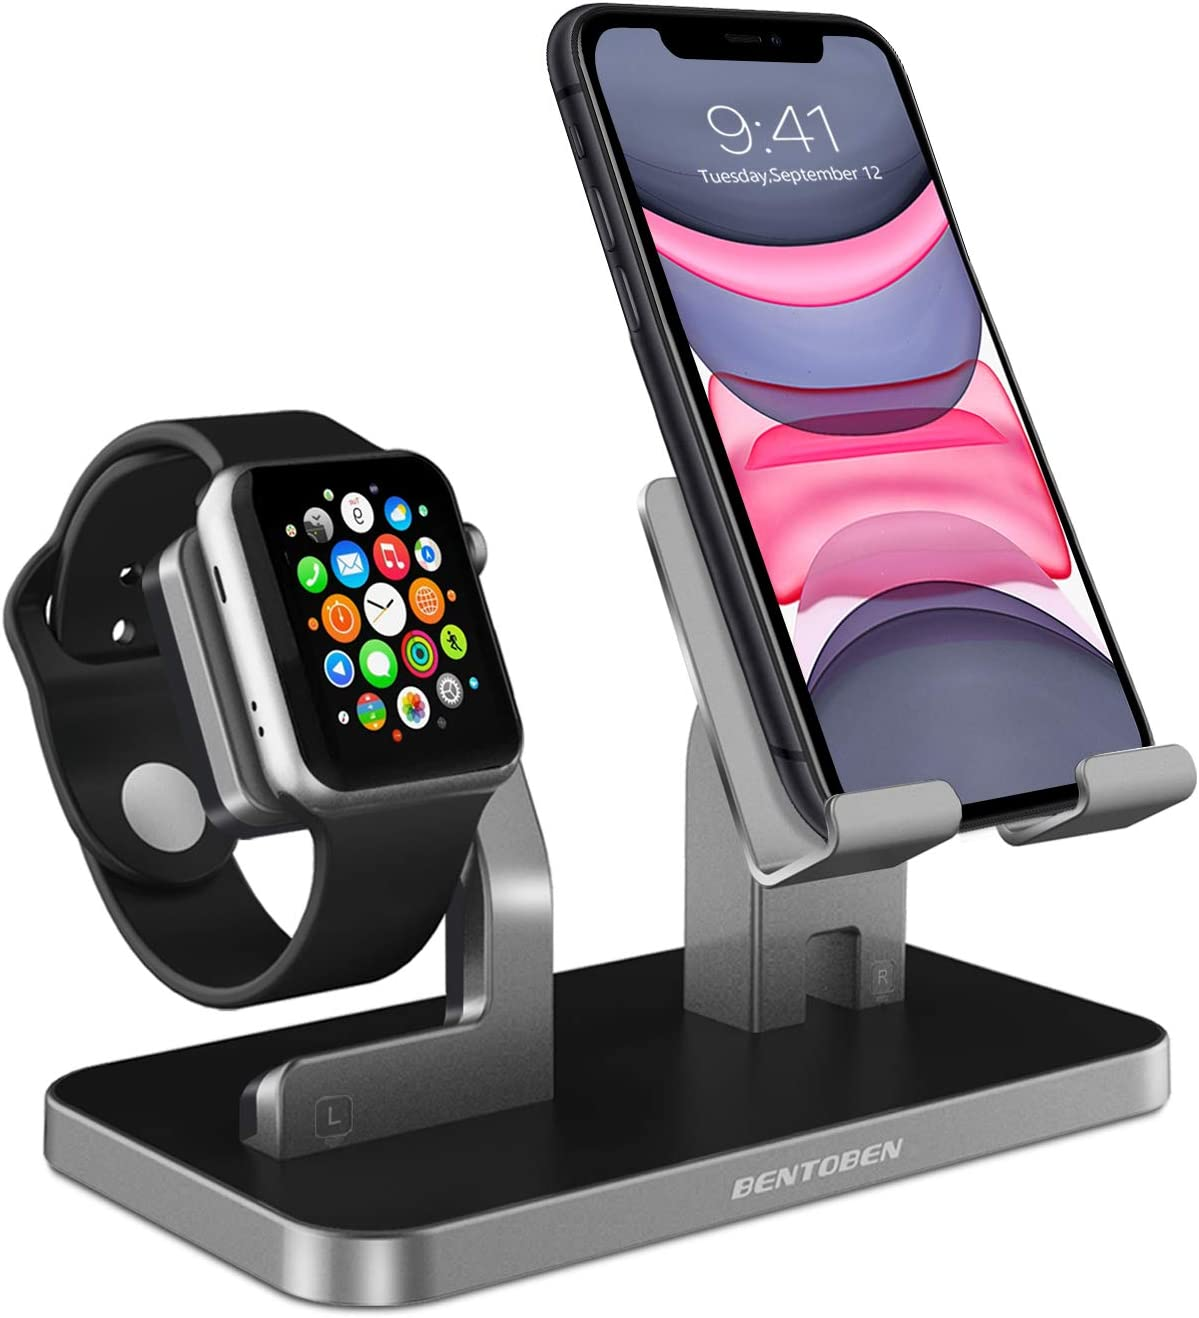 BENTOBEN Cell Phone Stand Compatible with Apple Watch Universal Desktop Stand Holder for iWatch Series 5/4/3/2/1 iPhone 11 Pro Max XS XR X 8 7 6S 6 Plus, Space Gray